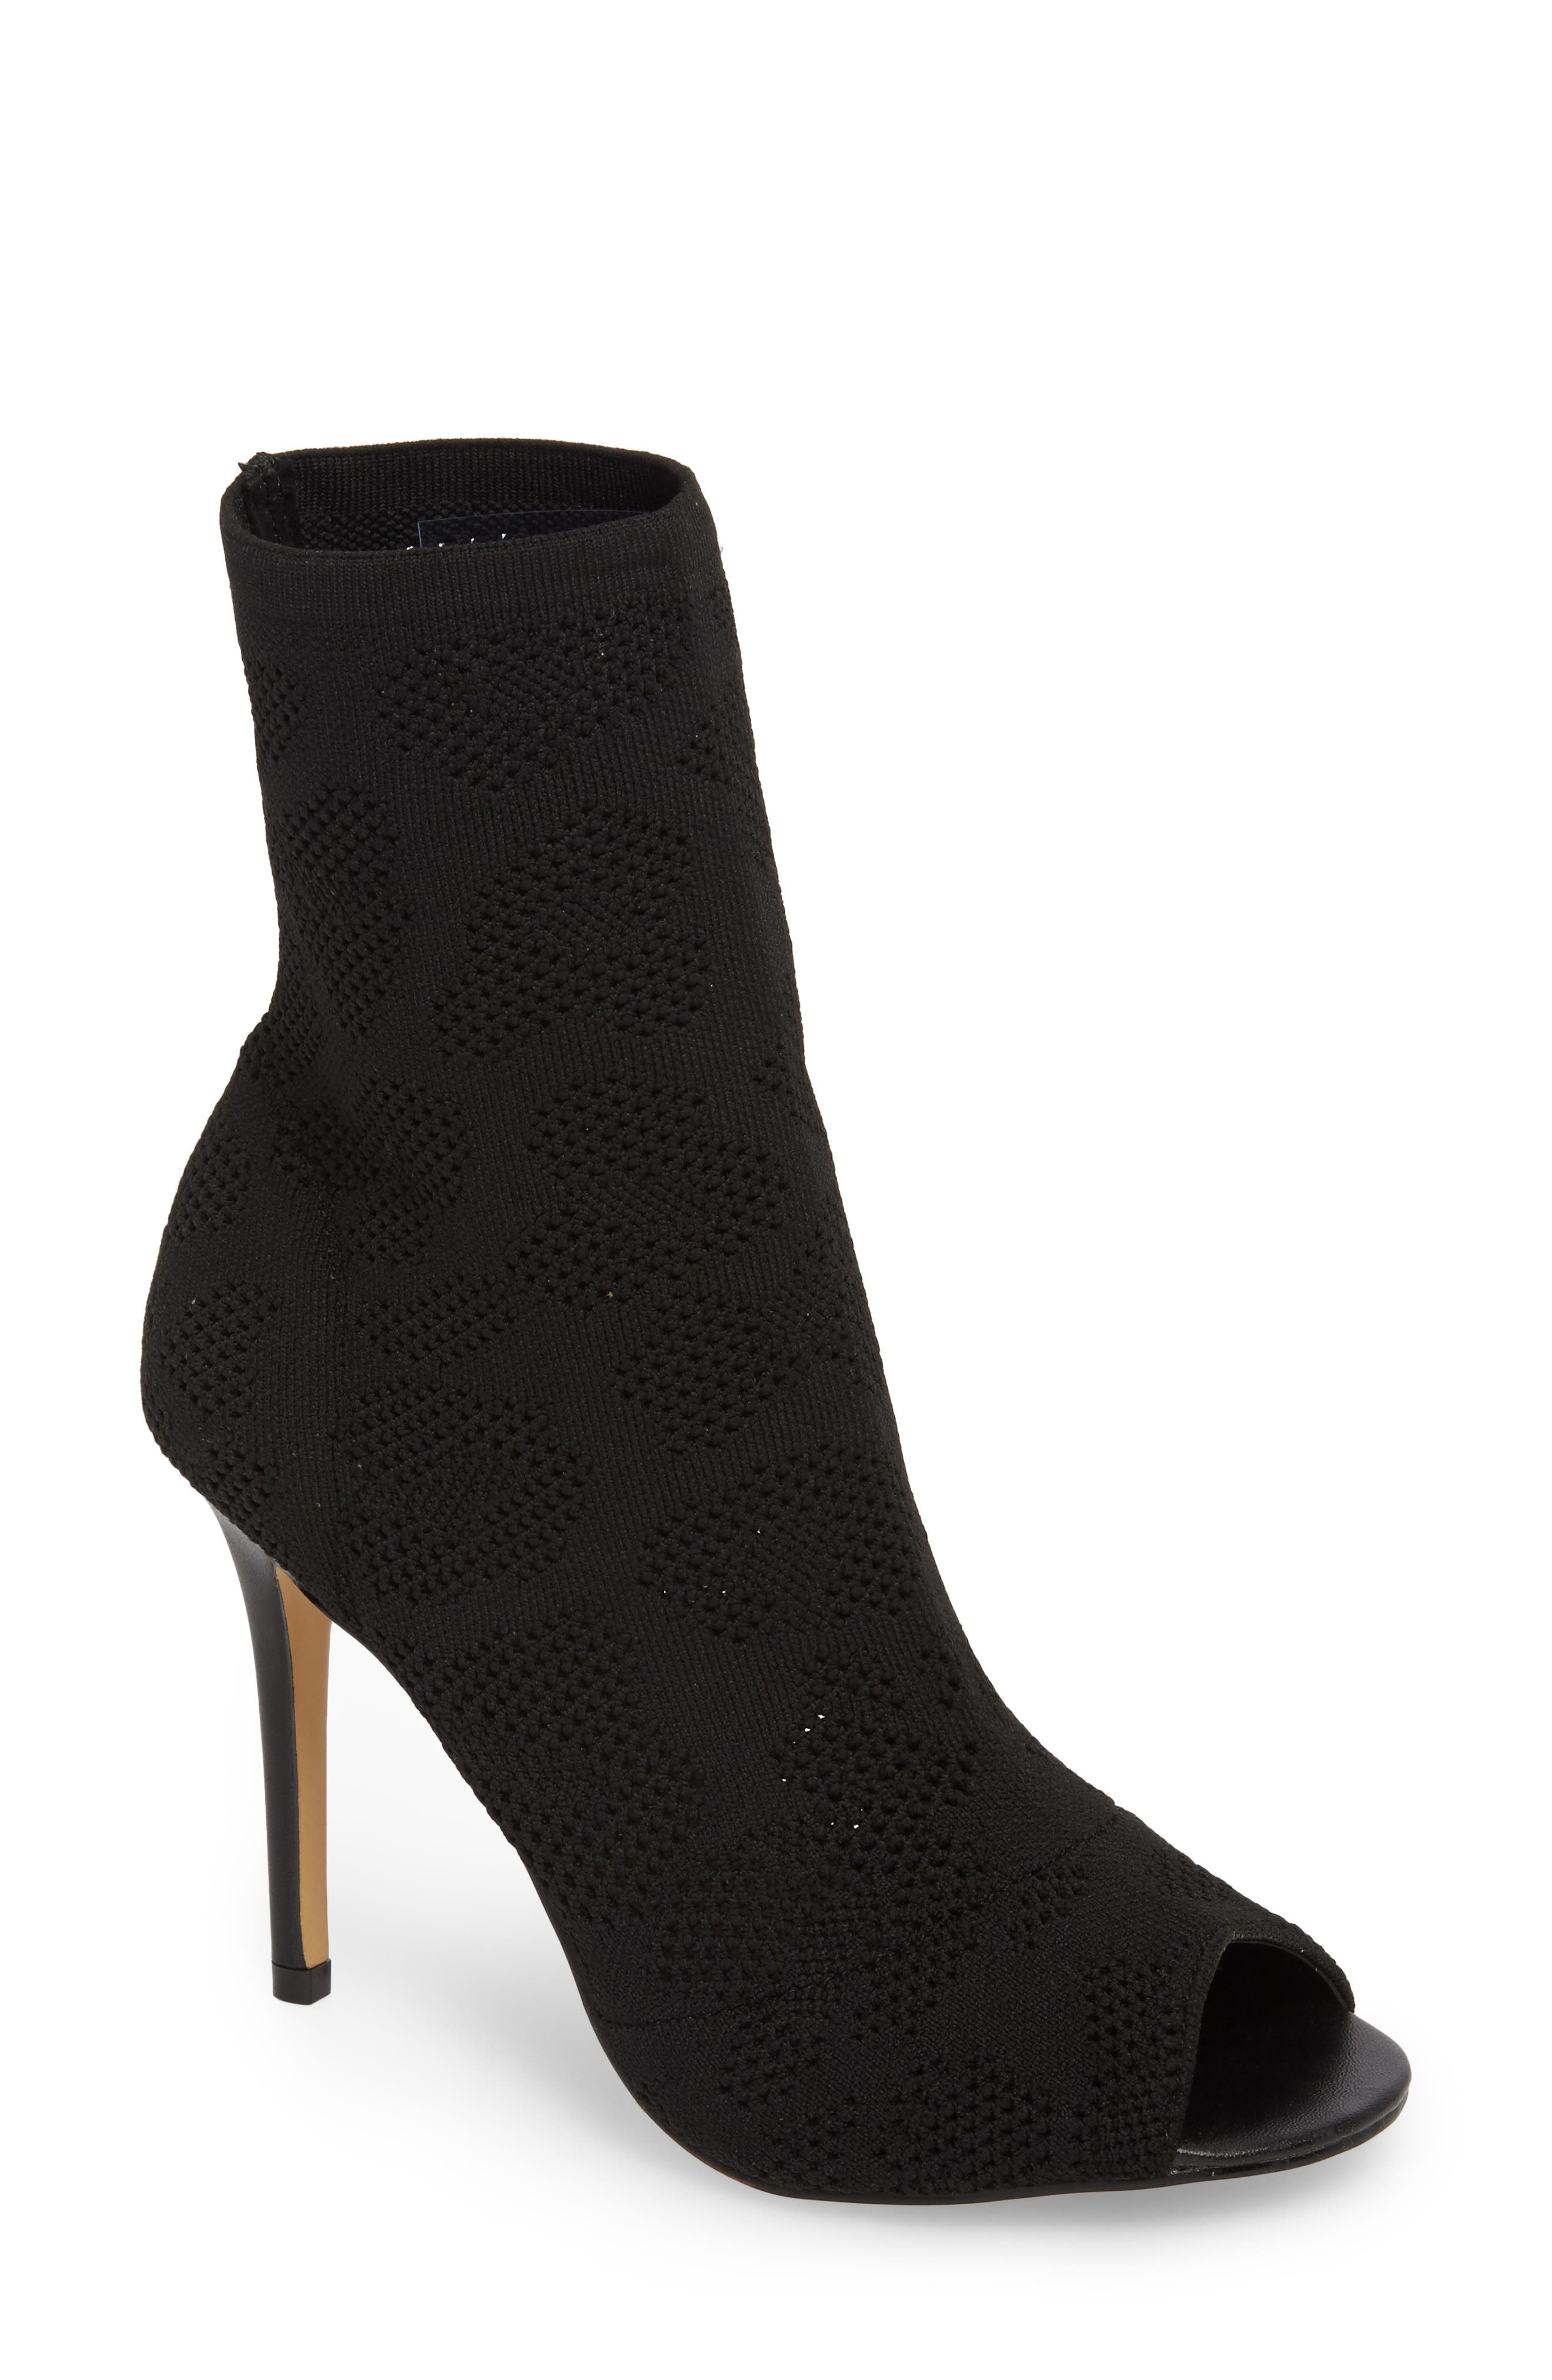 Ranger Sock Knit Open Toe Bootie,                             Main thumbnail 1, color,                             Black Stretch Fabric